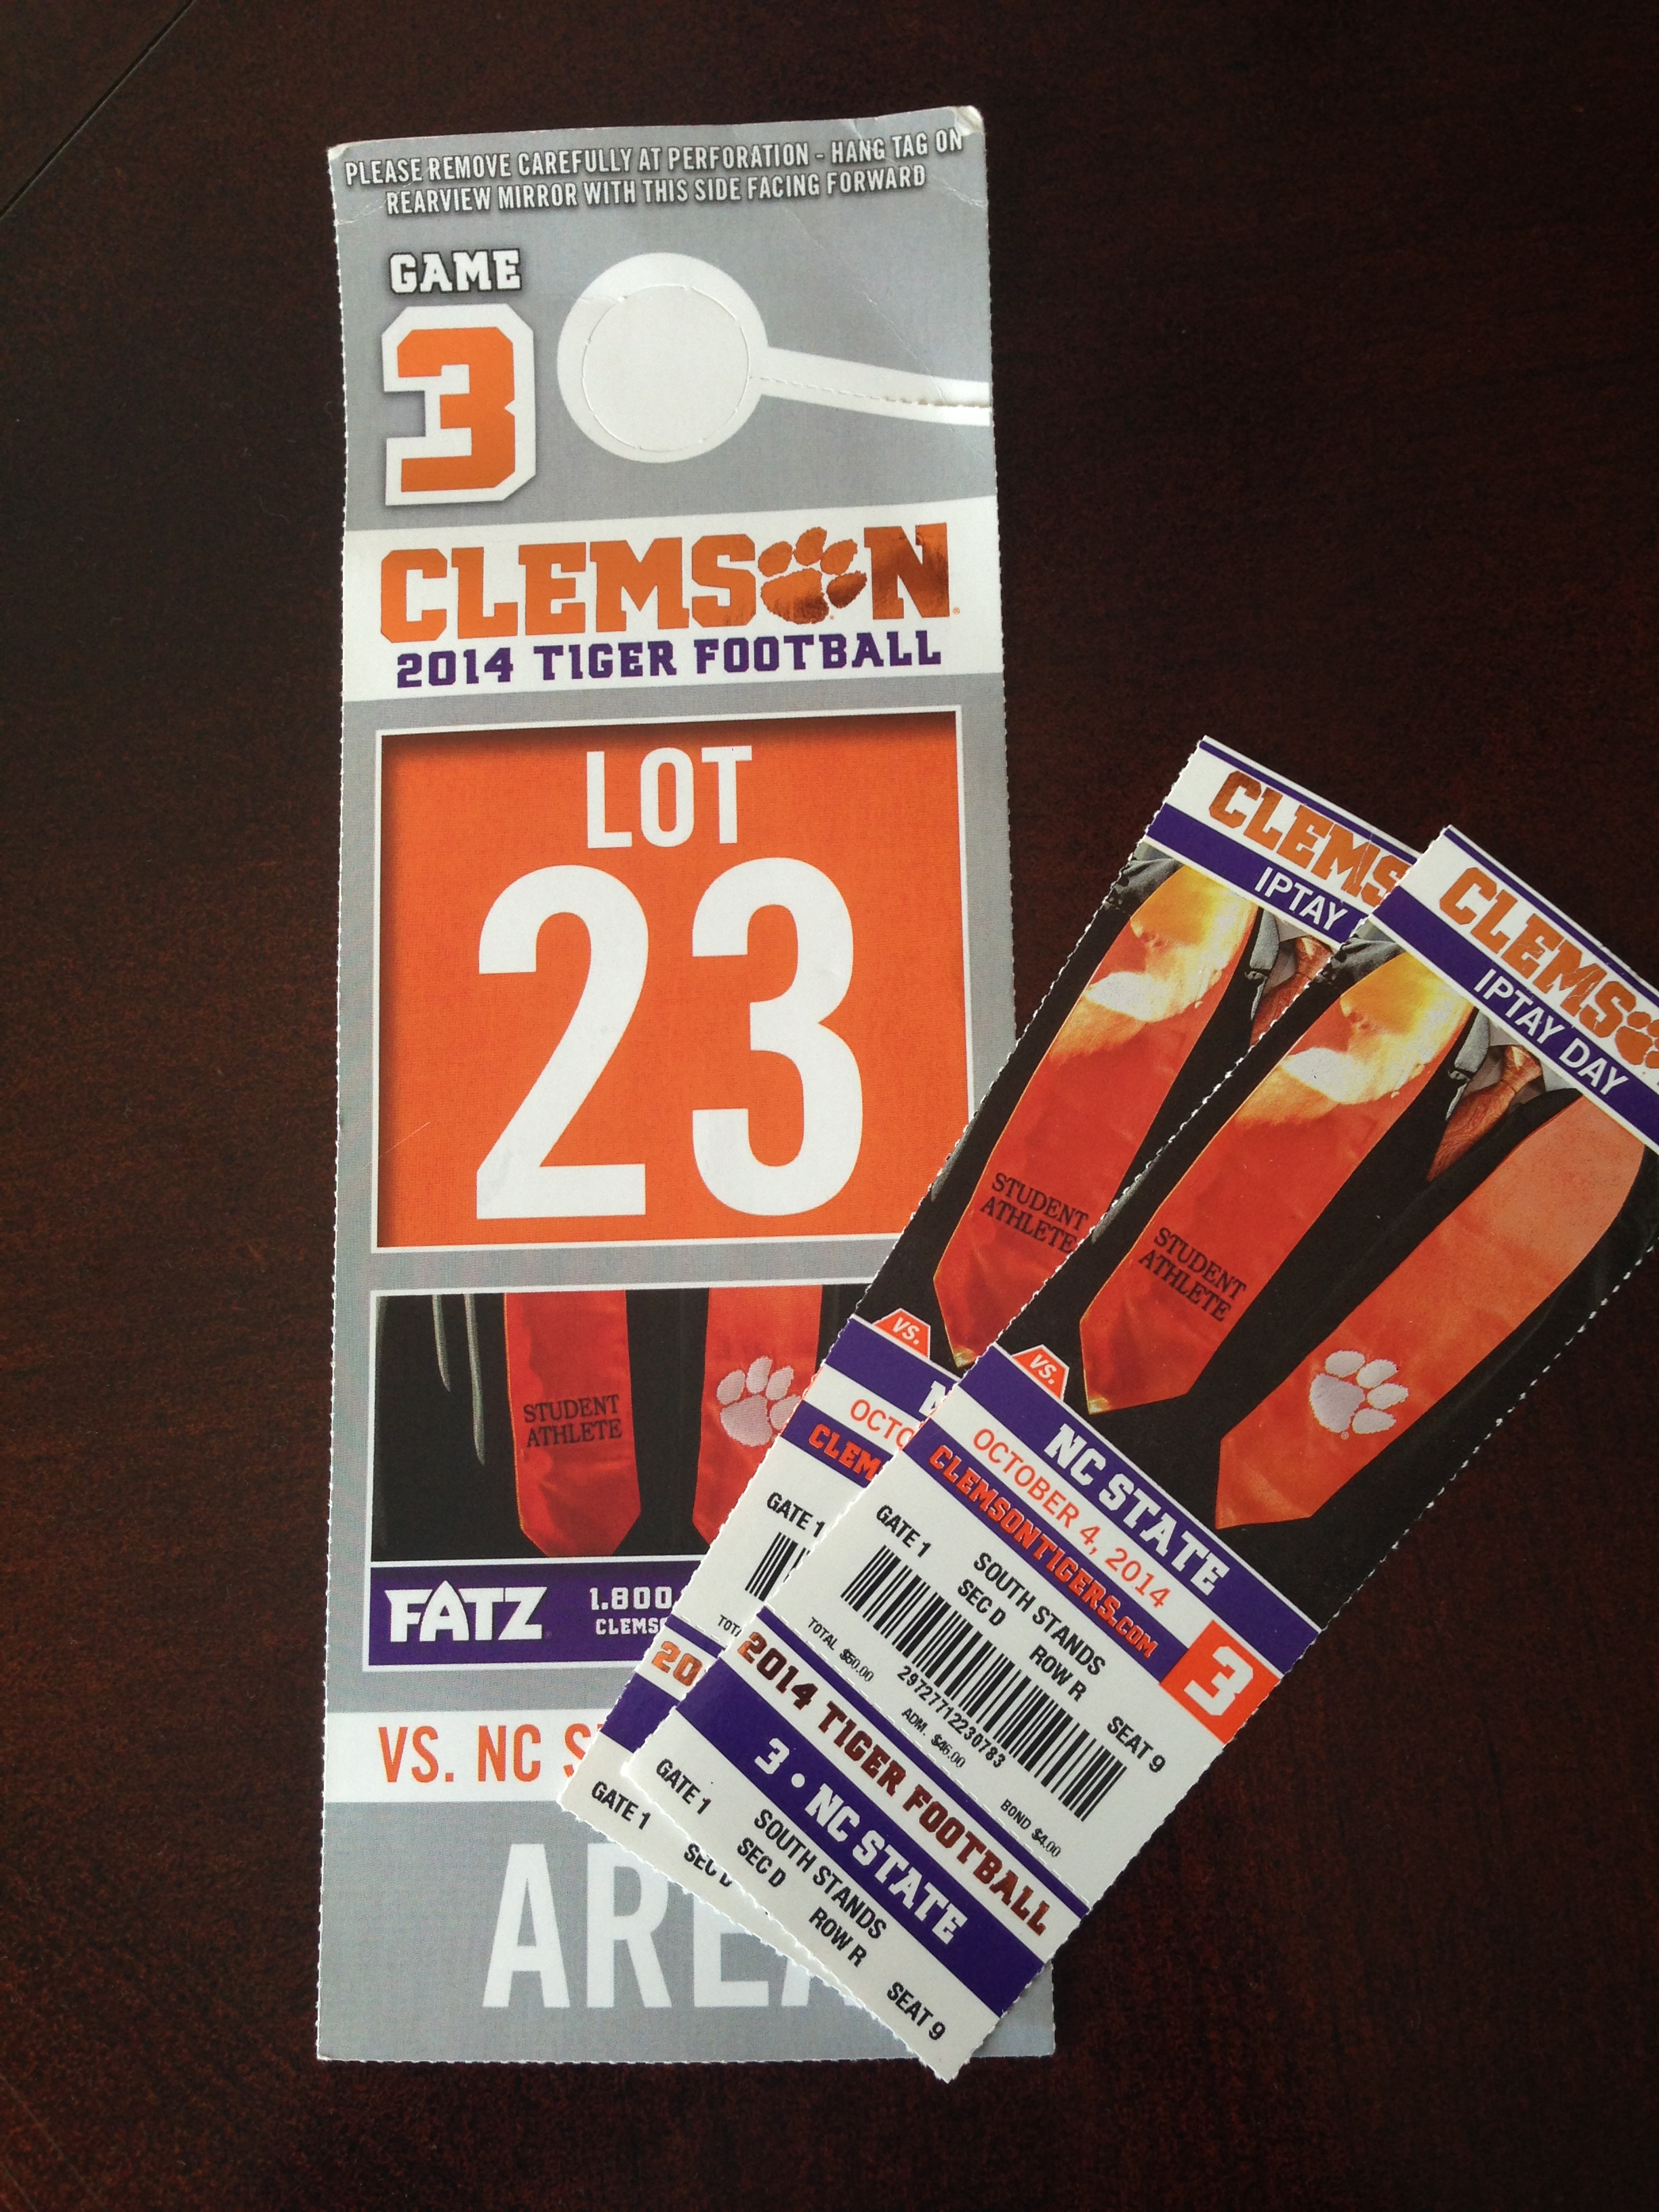 Tickets and parking pass for this weekend's game.